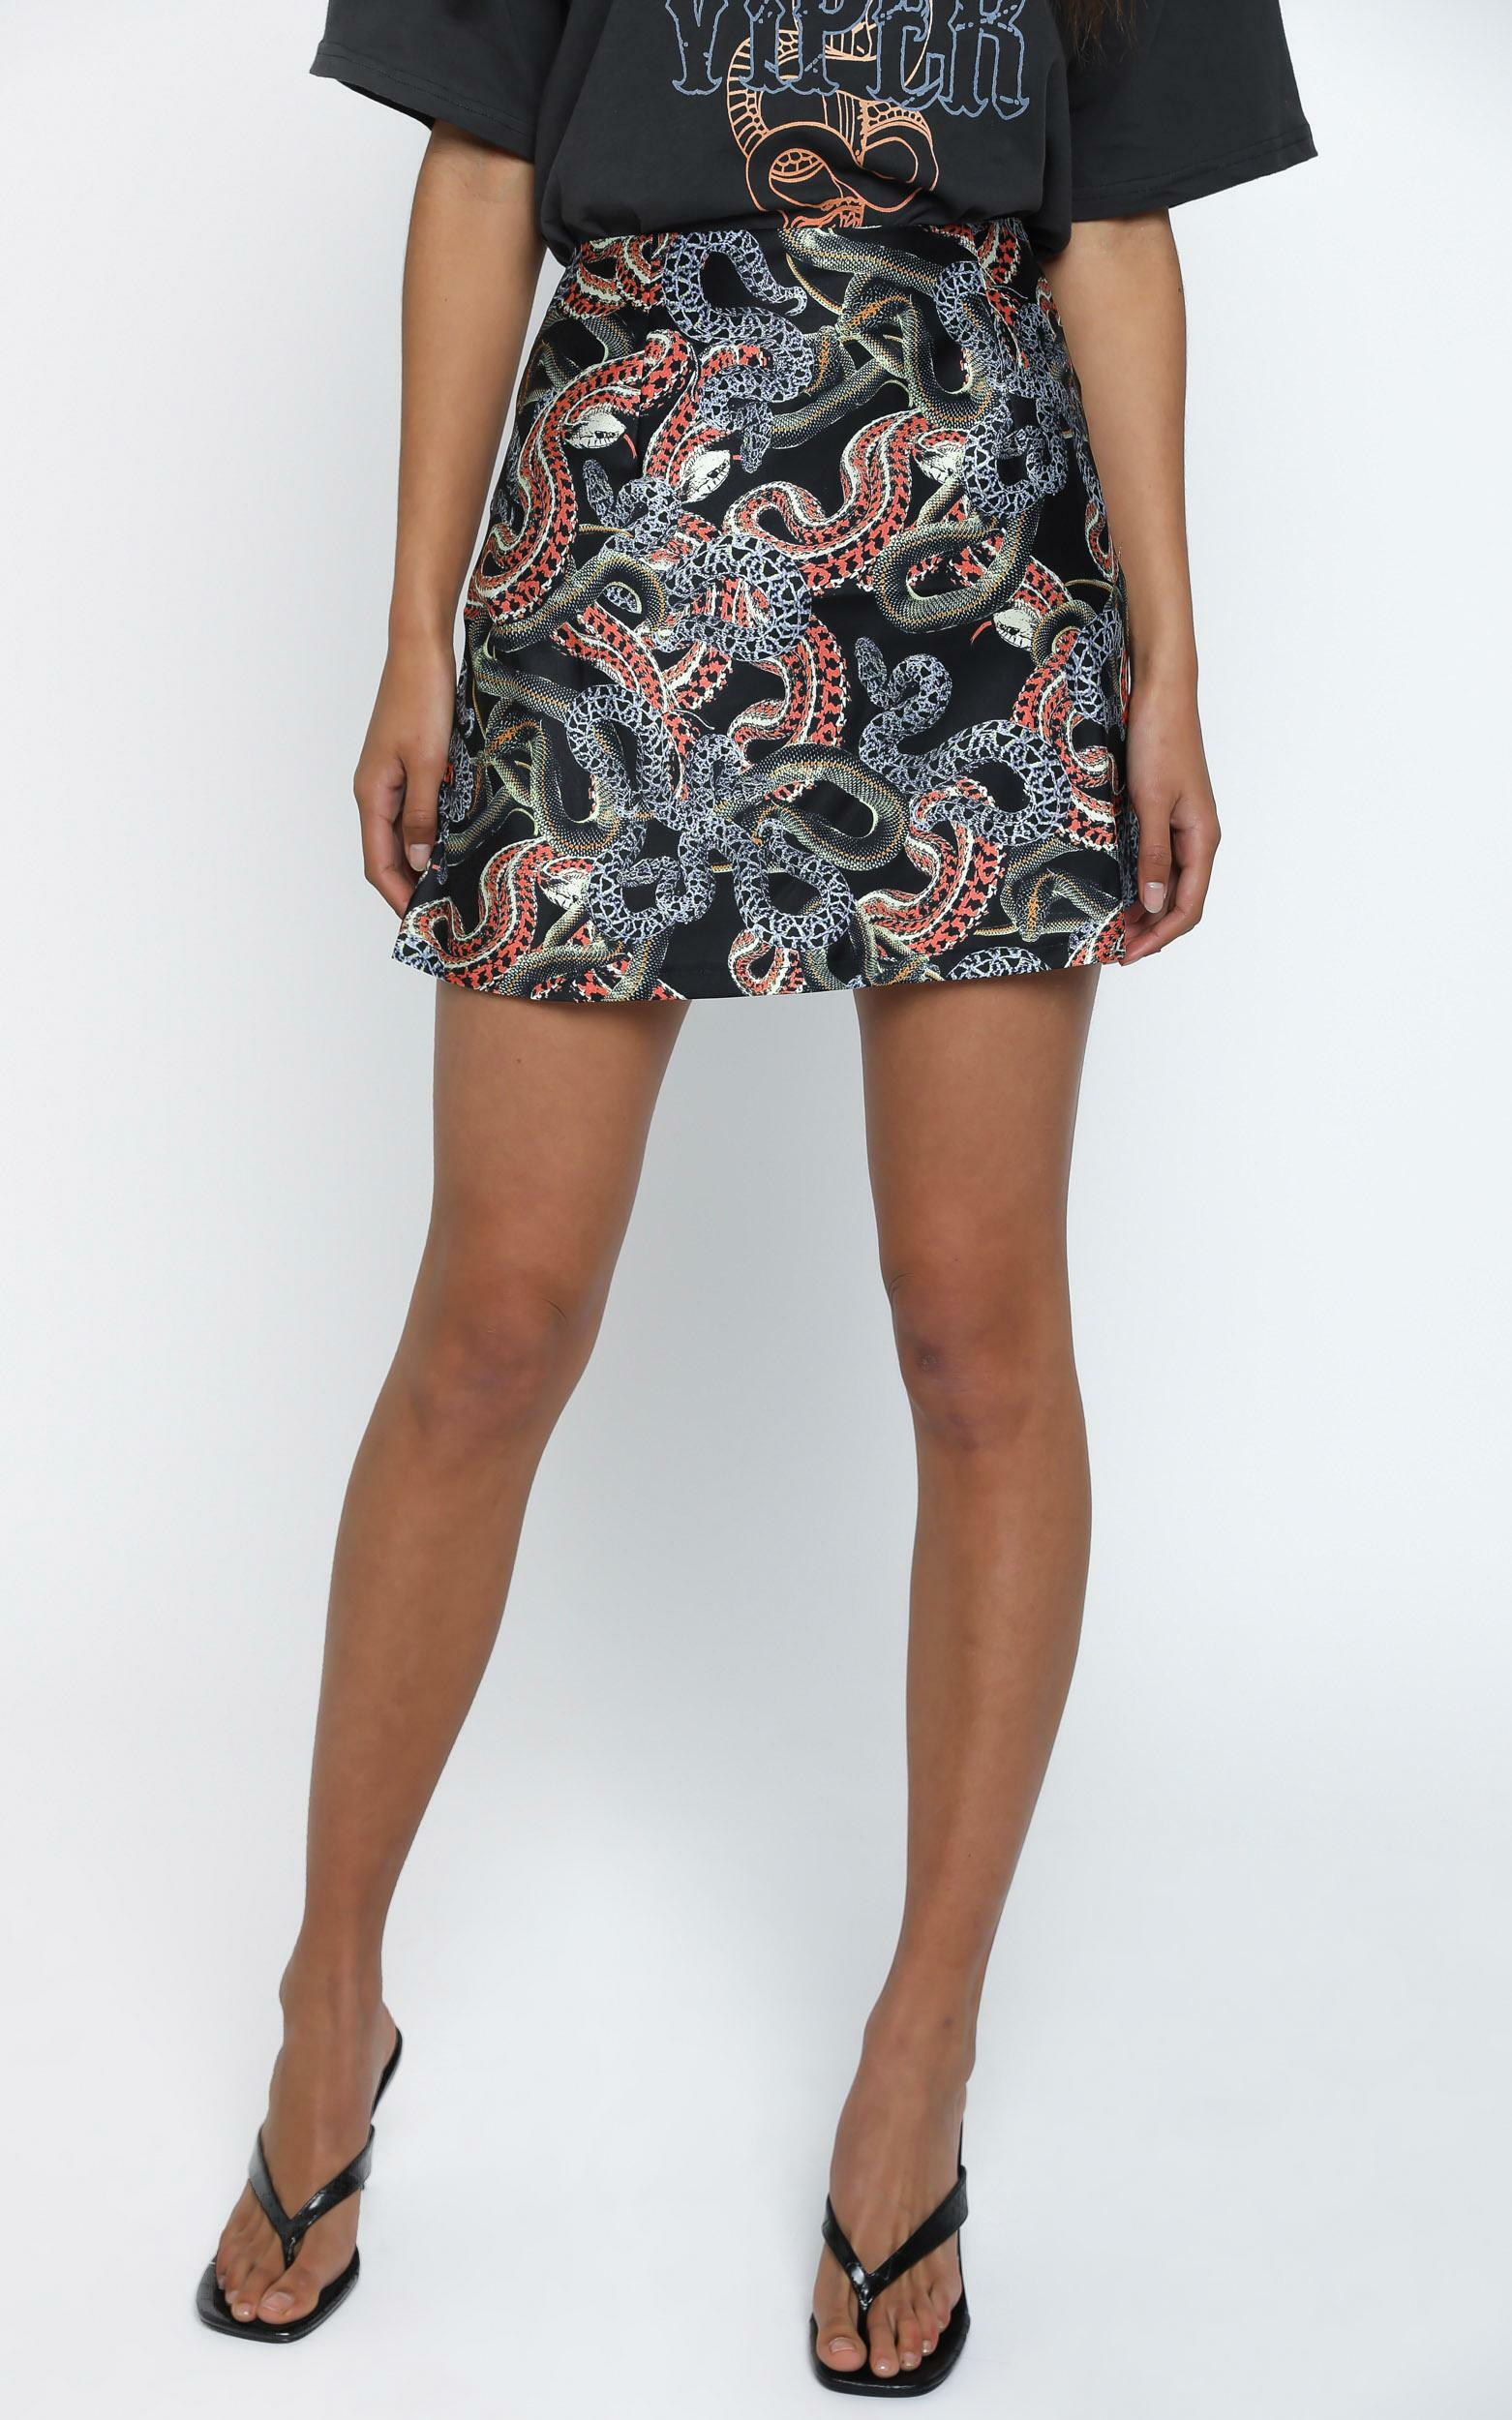 Twiin - Snakes Alive Mini Slip Skirt in Multi - 6 (XS), BLK1, hi-res image number null